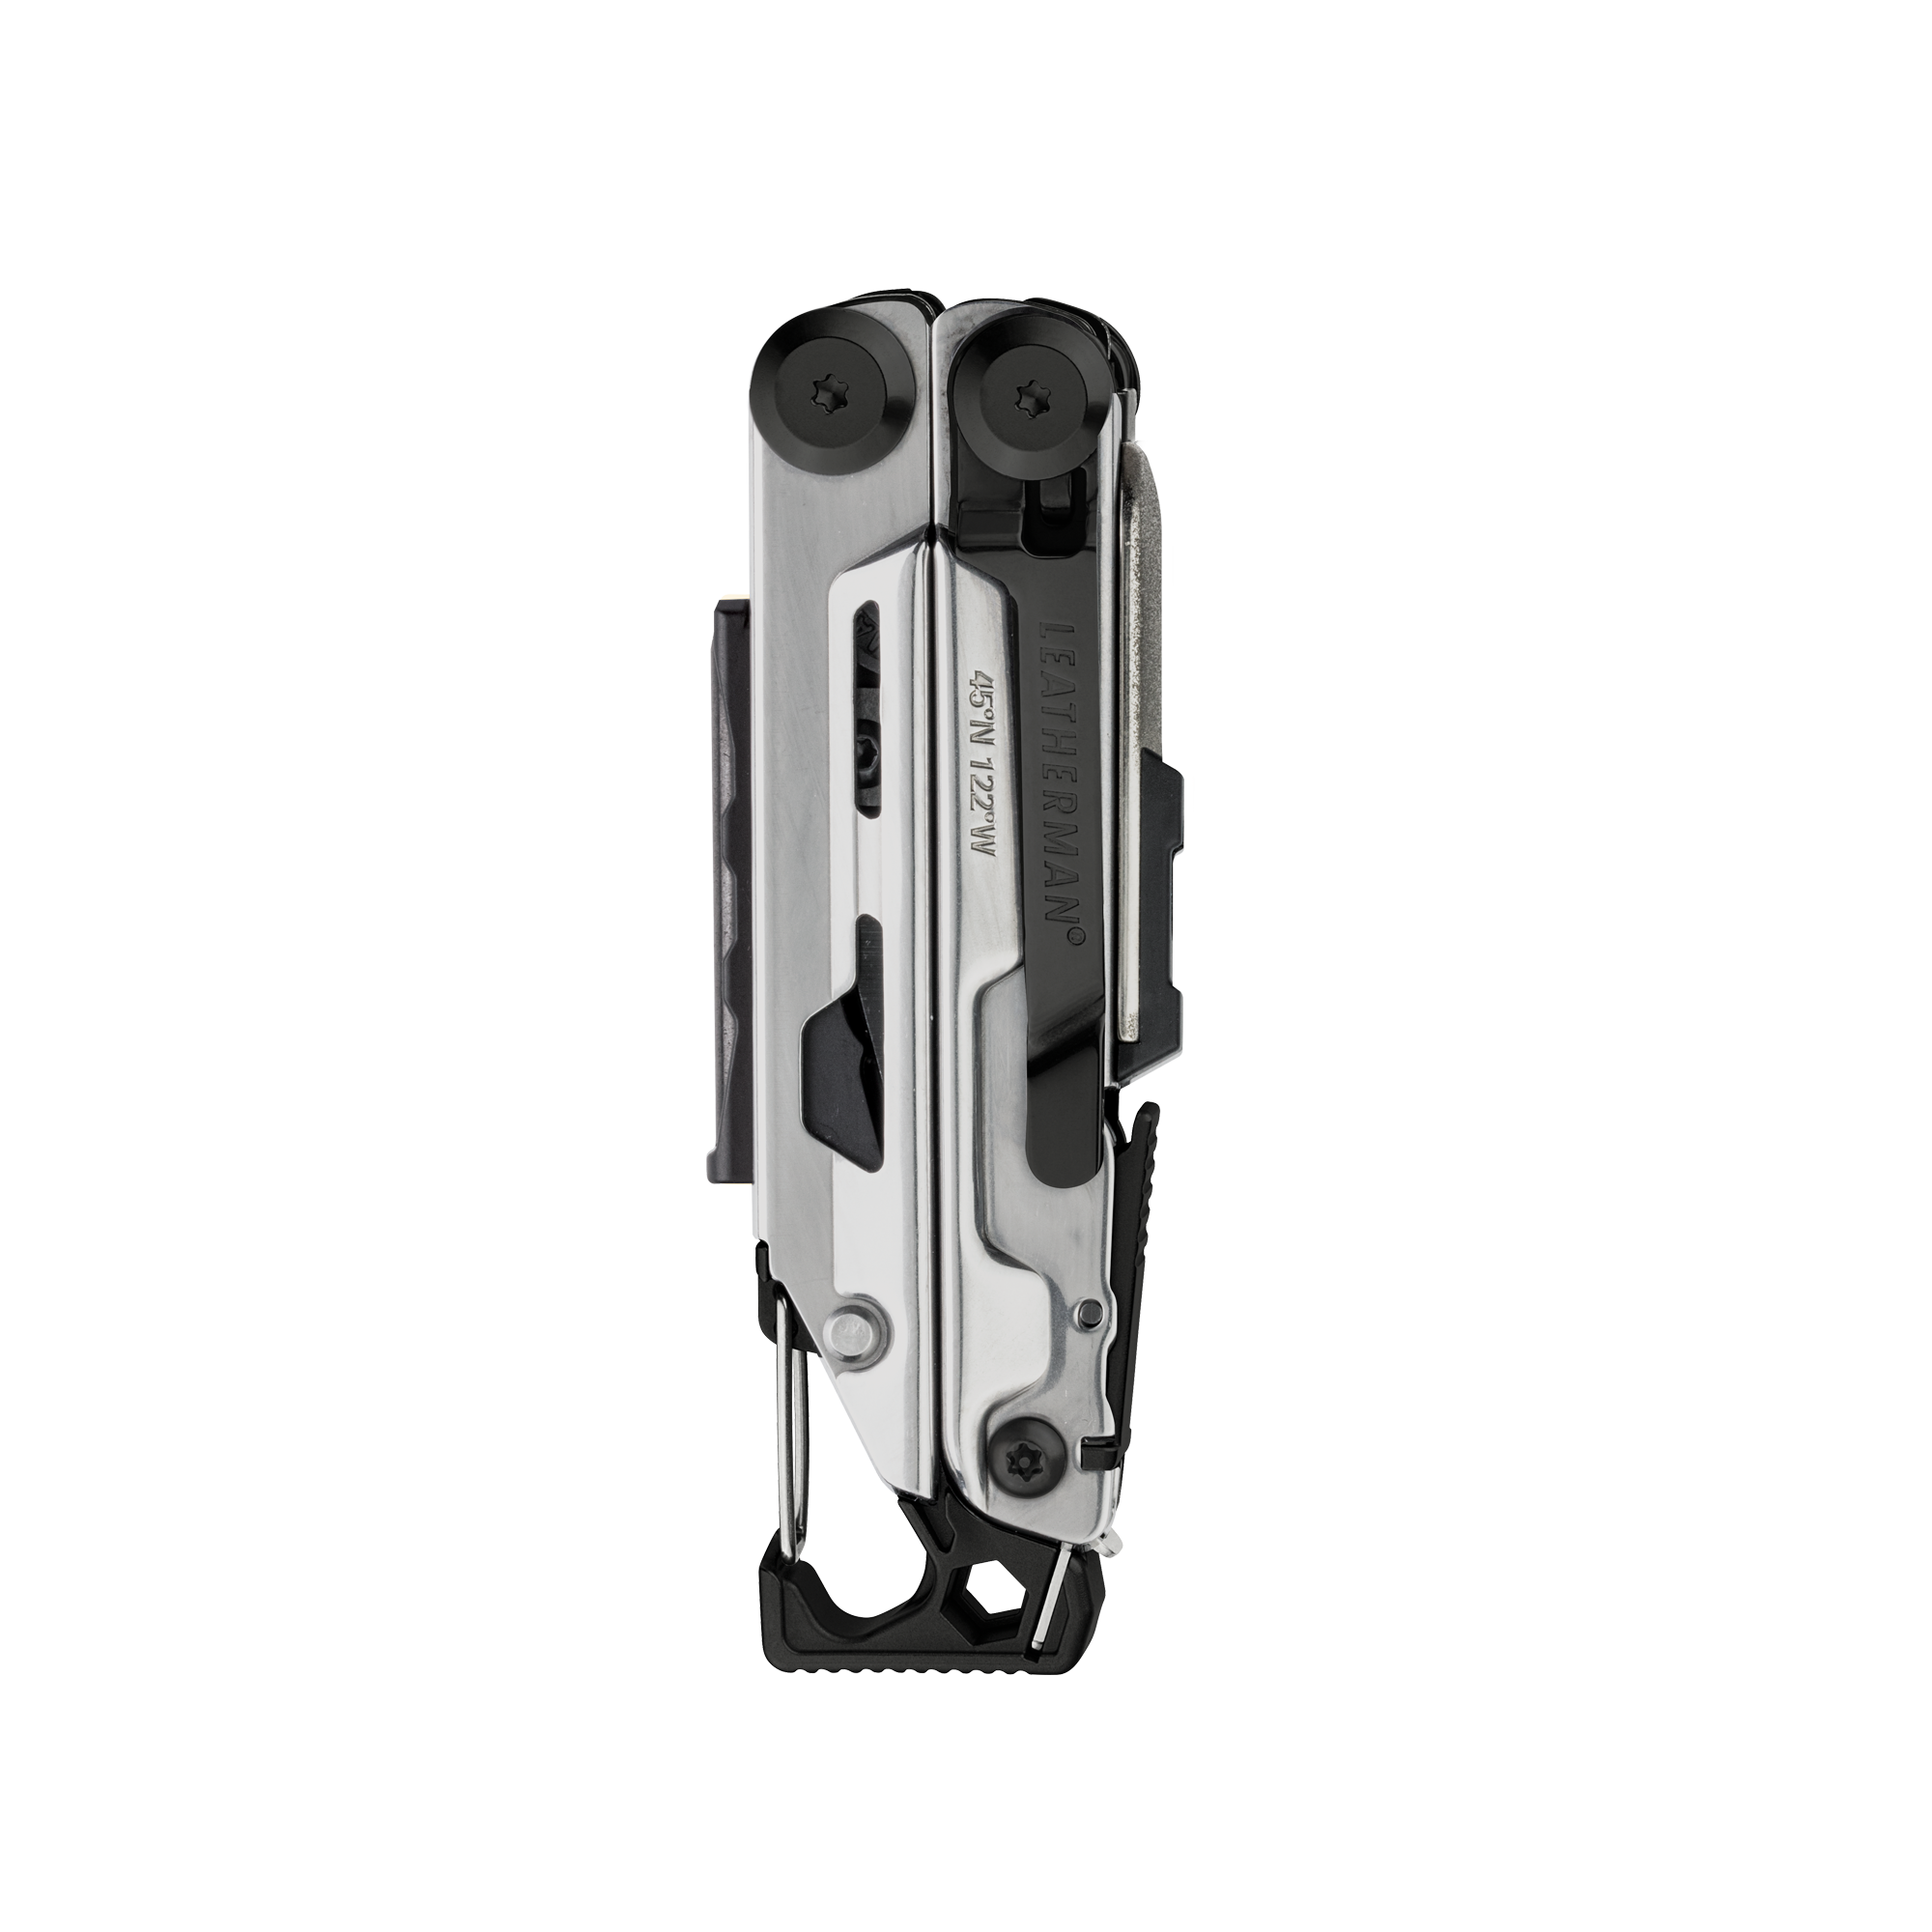 Leatherman signal multi-tool, black & silver, closed view, 19 tools